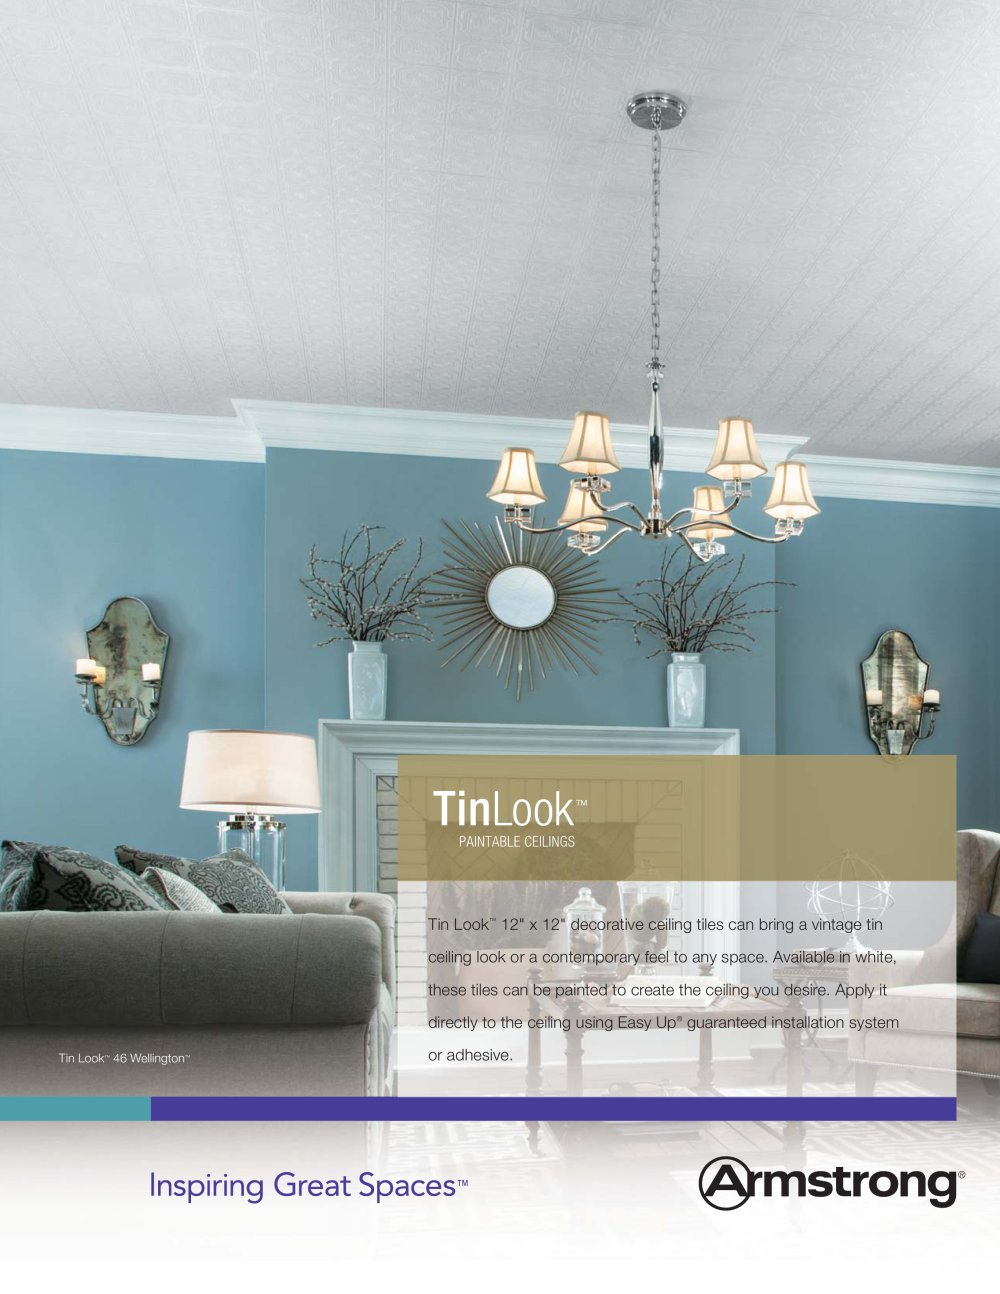 Tinlook Decorative Ceiling Tiles 1 2 Pages